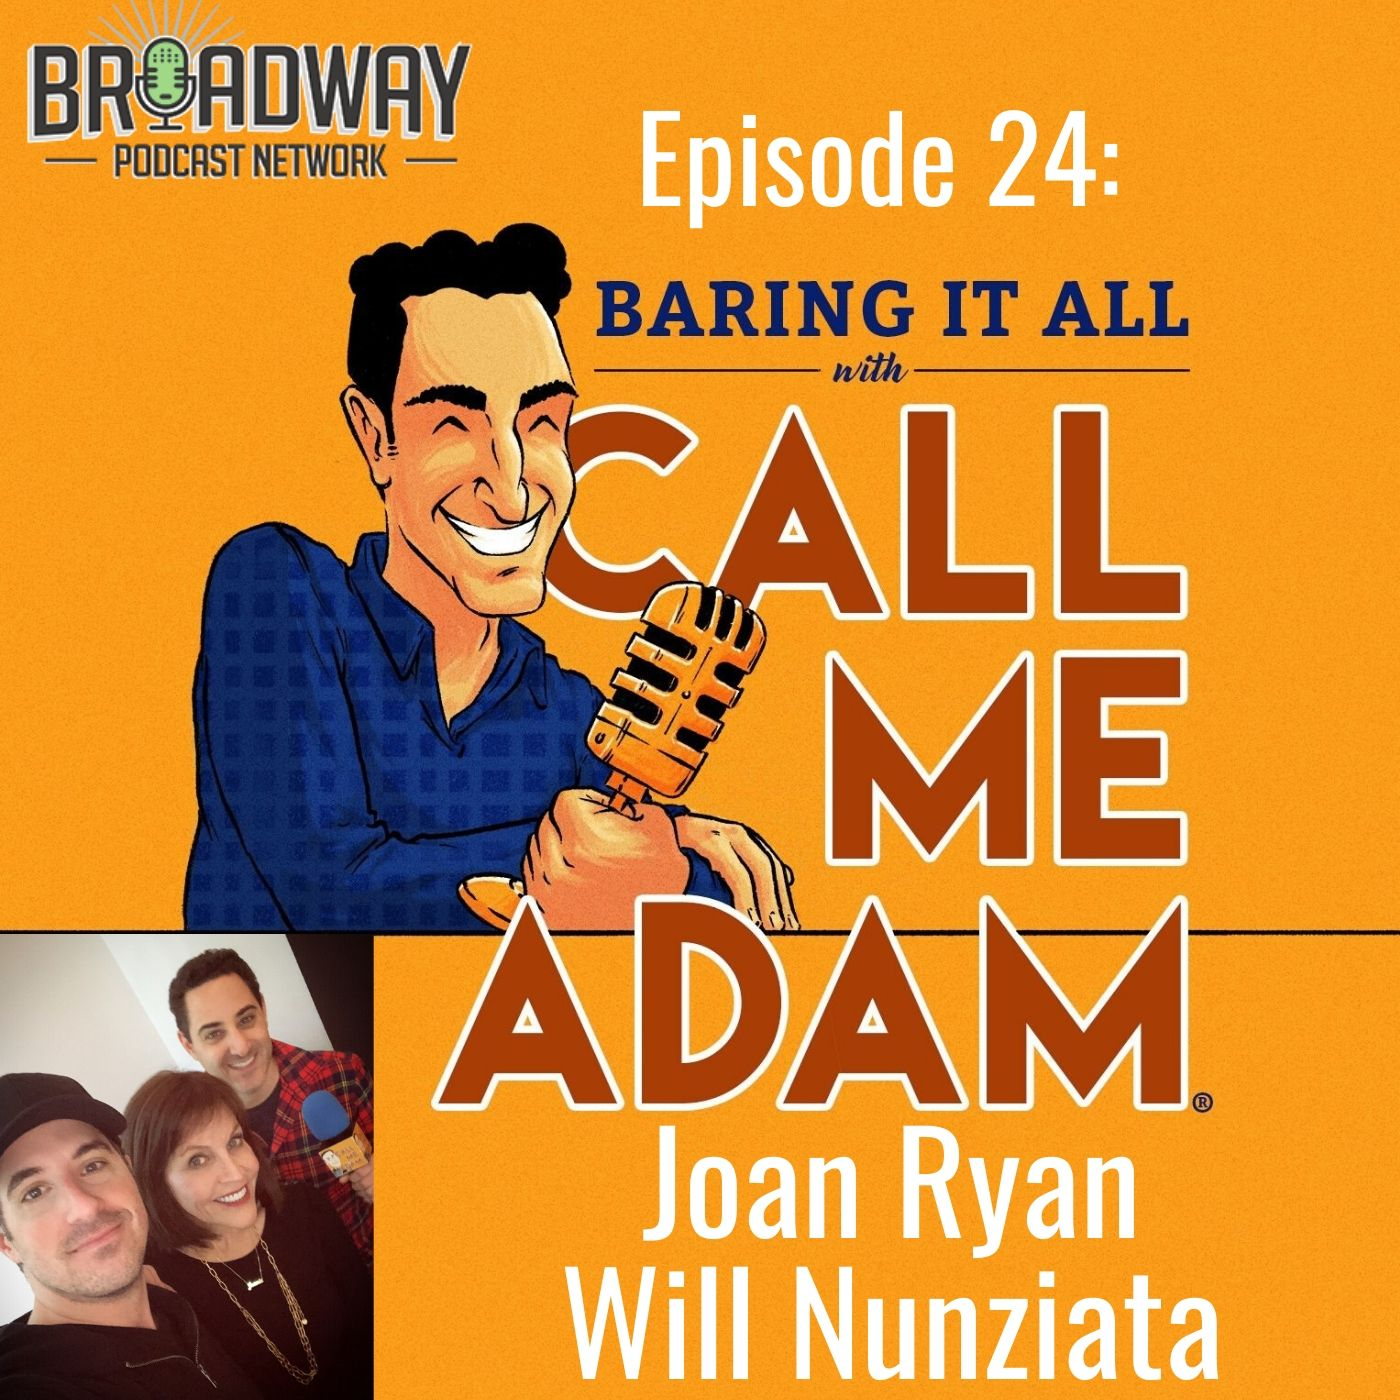 Baring It All With Call Me Adam Ep 24 Joan Ryan and Will Nunziata